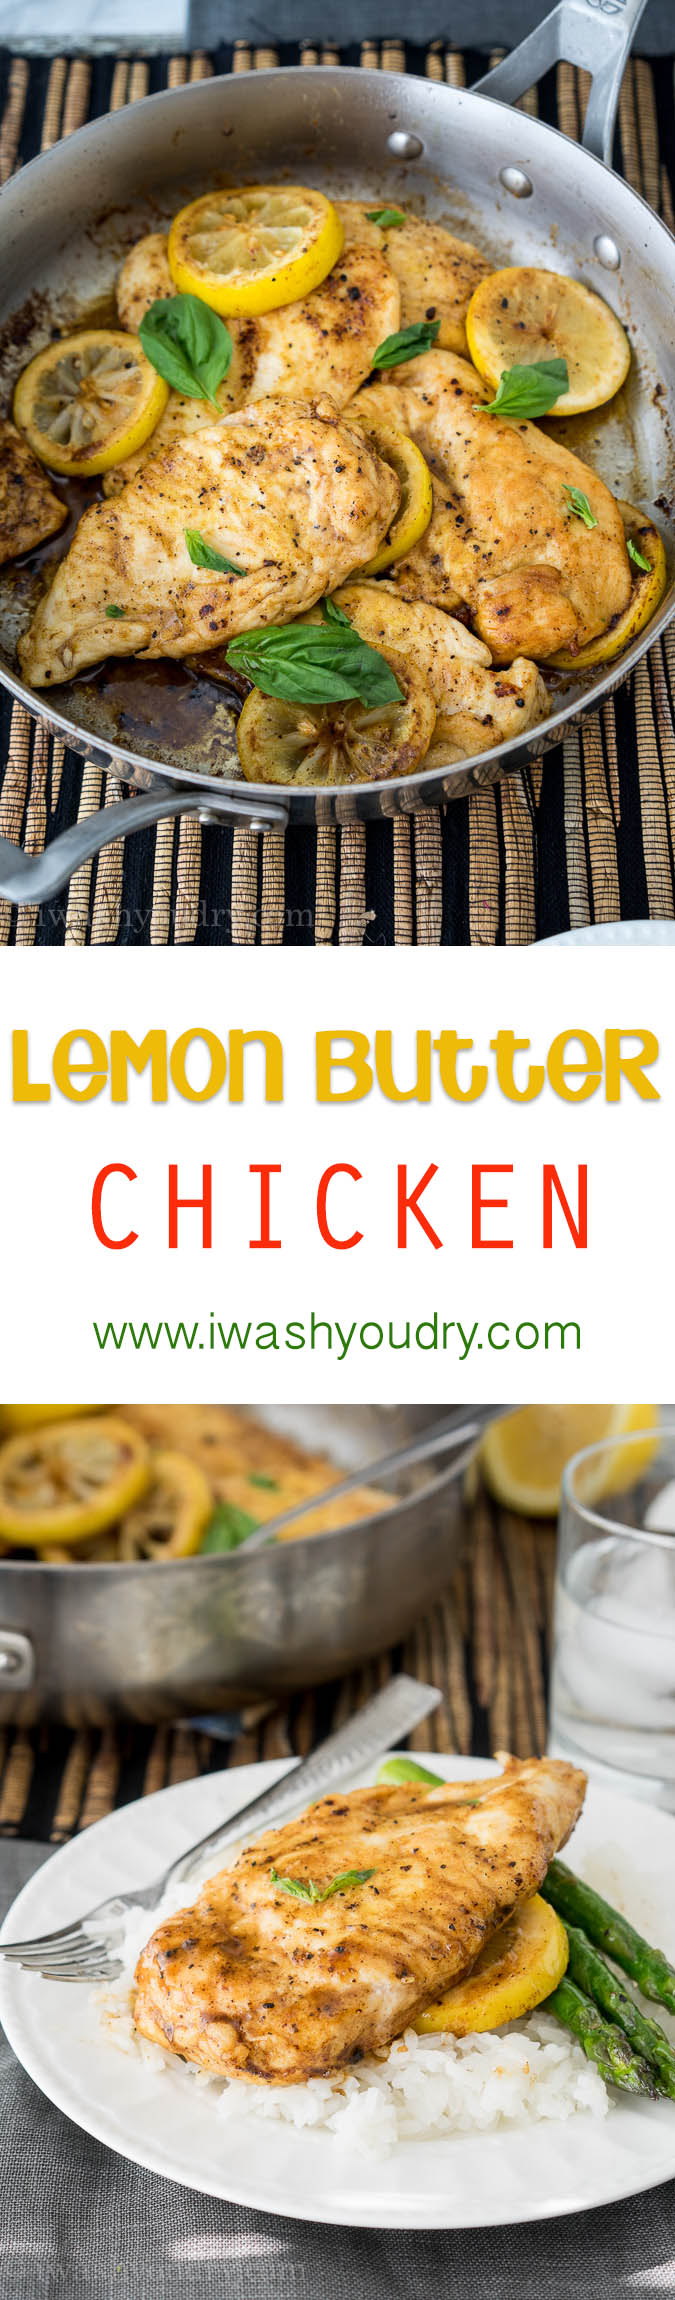 Quick and easy Lemon Butter Chicken Breasts only use 6 ingredients and one skillet!